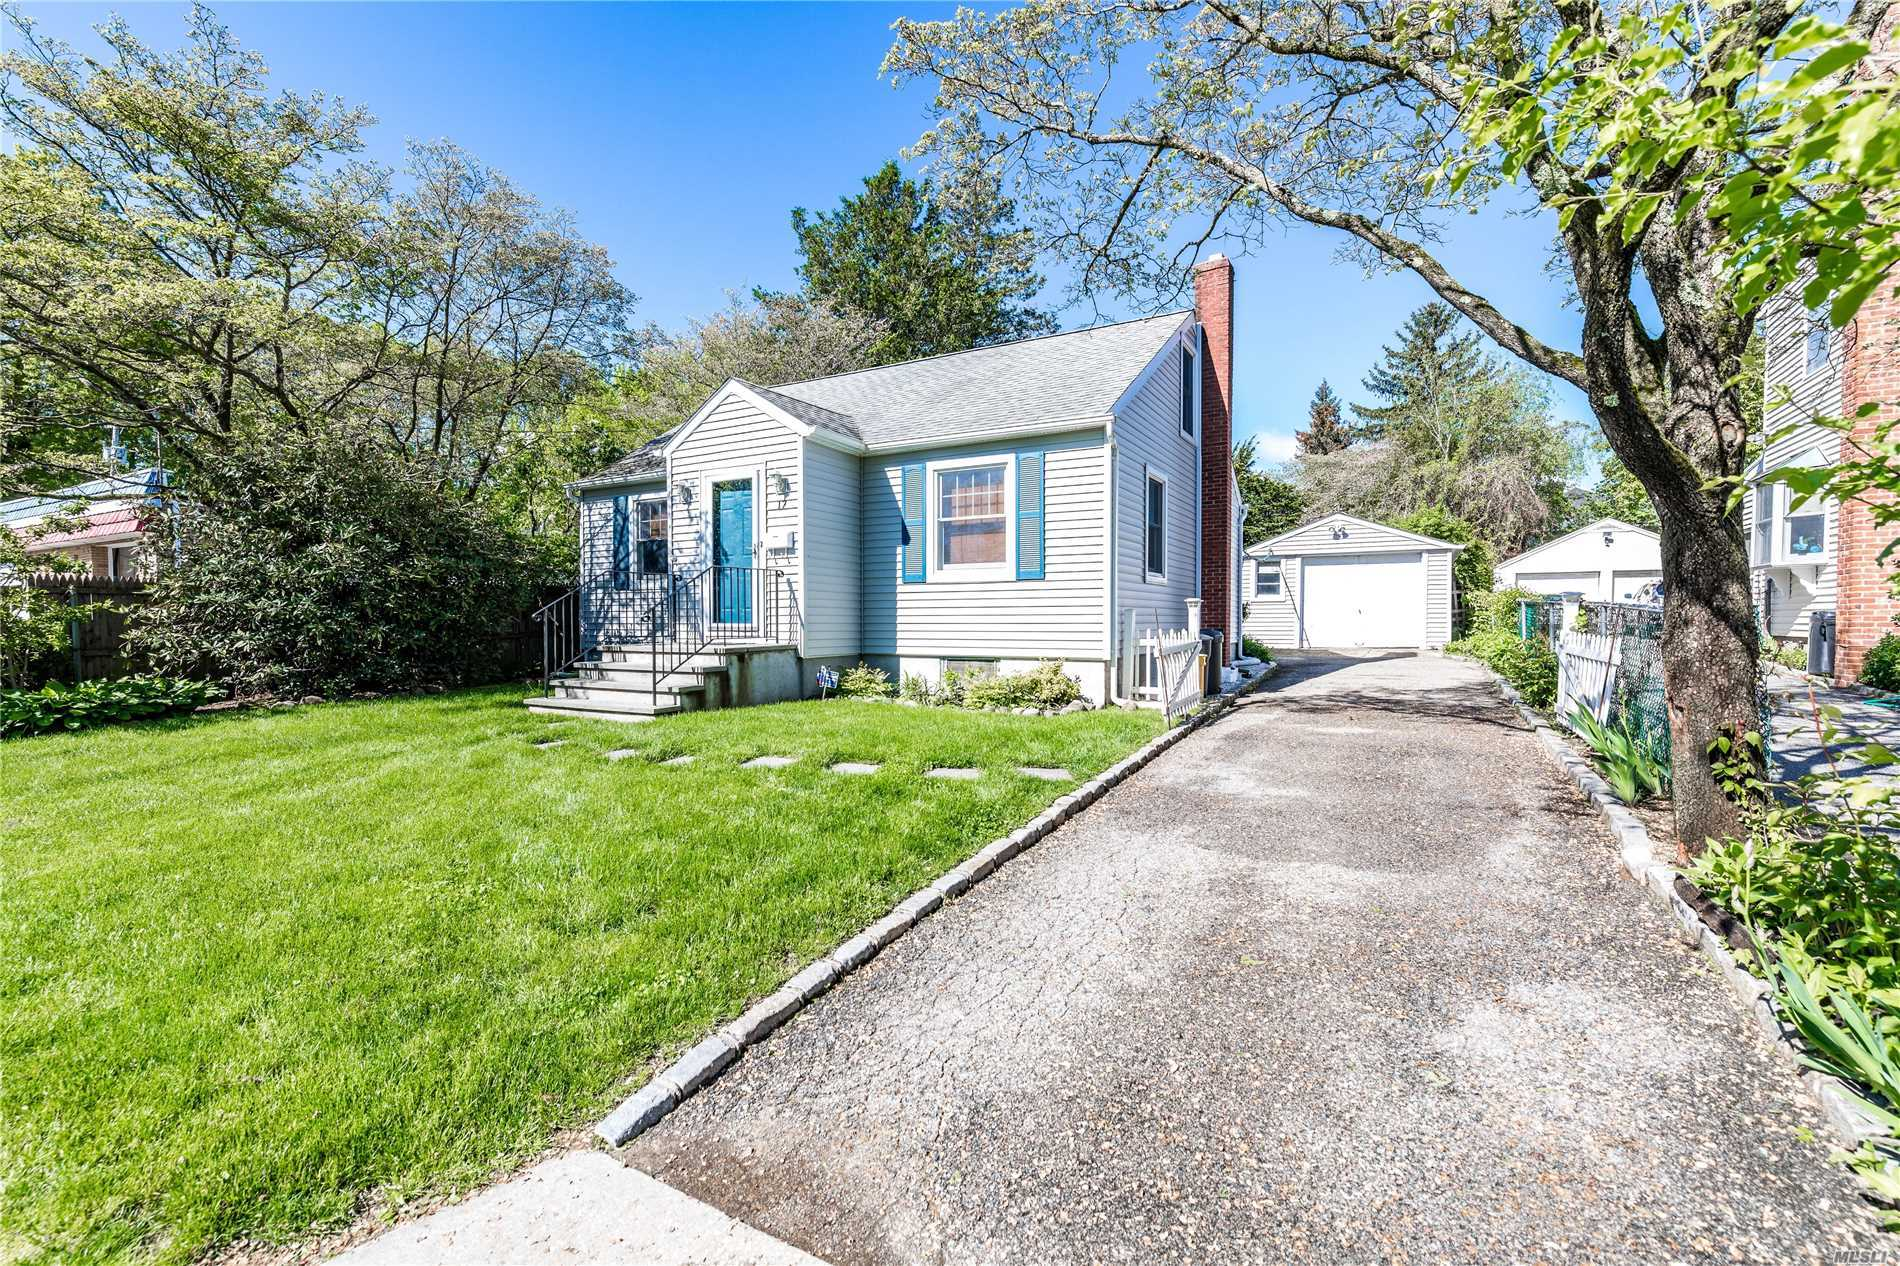 Cozy Welcoming Two Bedroom Cape Situated on a Beautiful Private Park-Like Property. This Charming Home has Wood Floors Throughout Eat in Kitchen/Dining Room a Walk up Attic. Room to Expand.